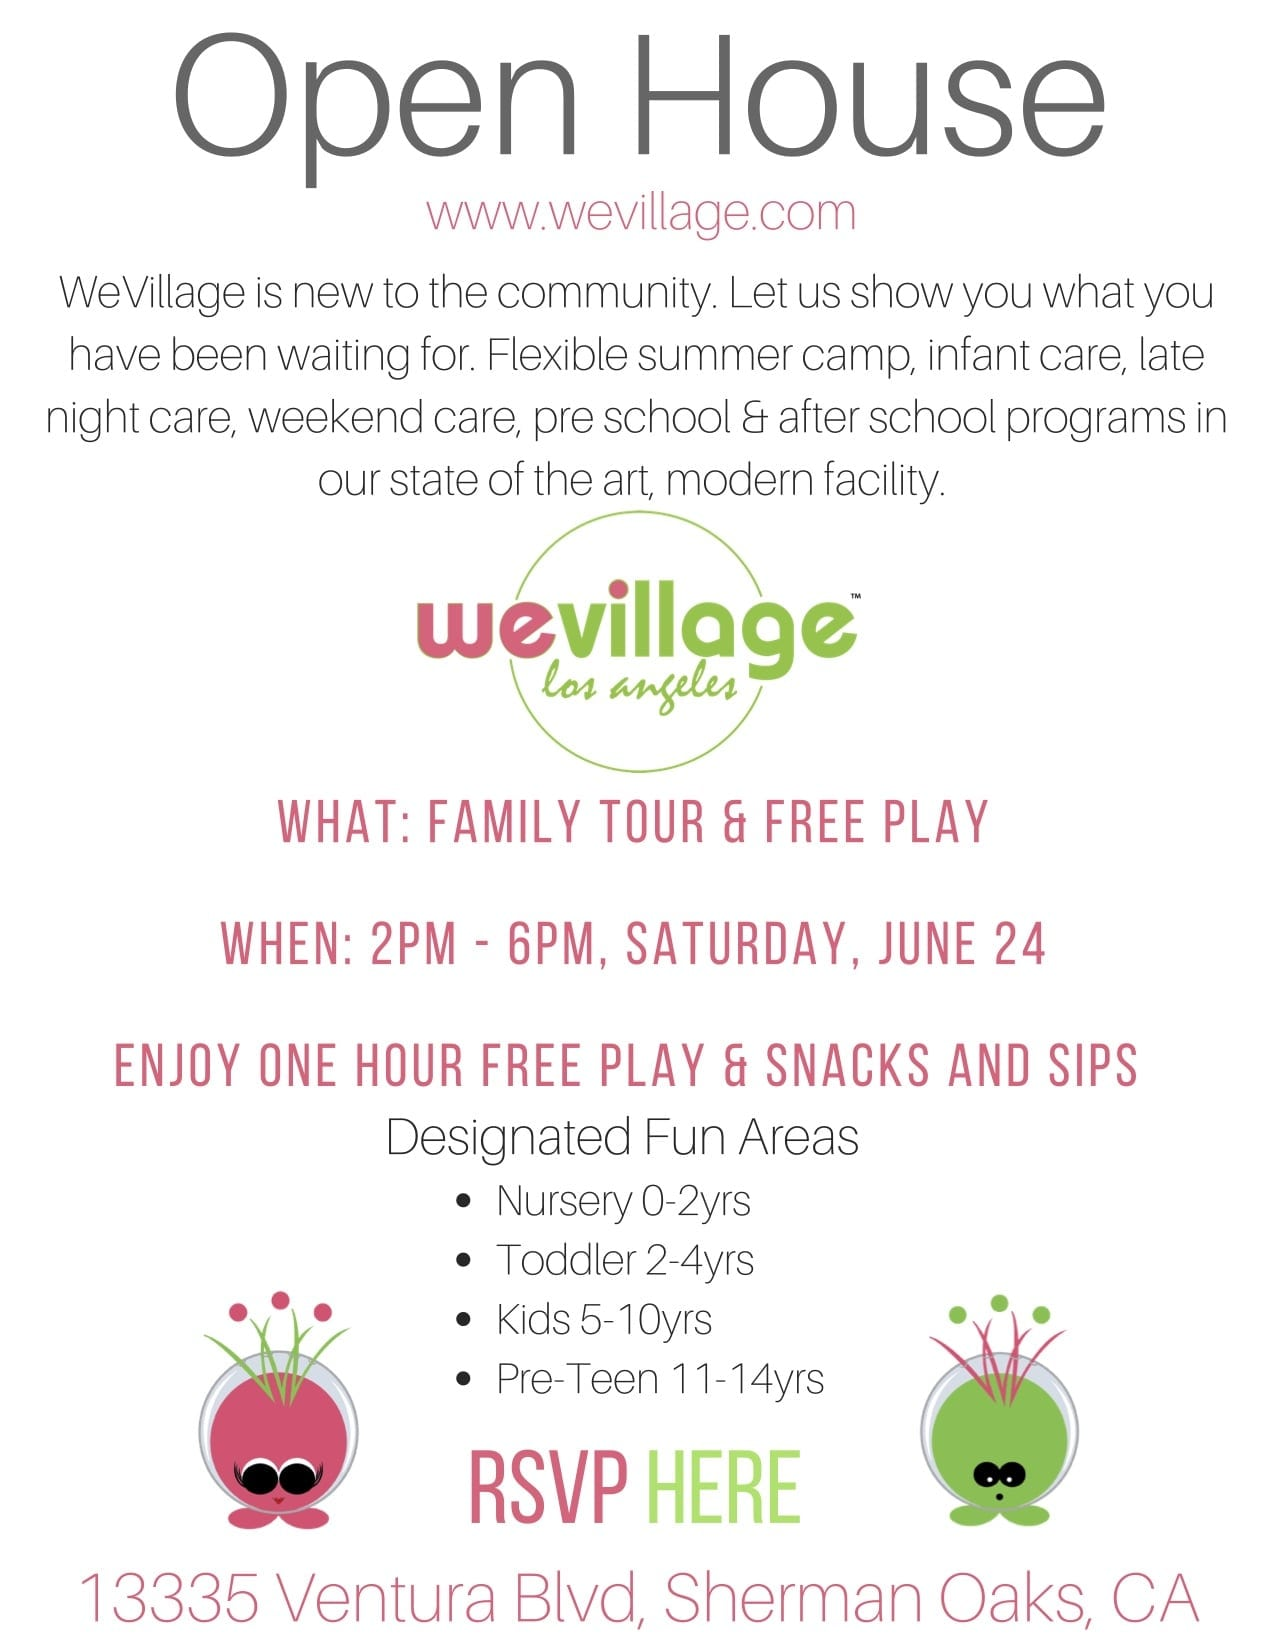 WeVillage Open House Event